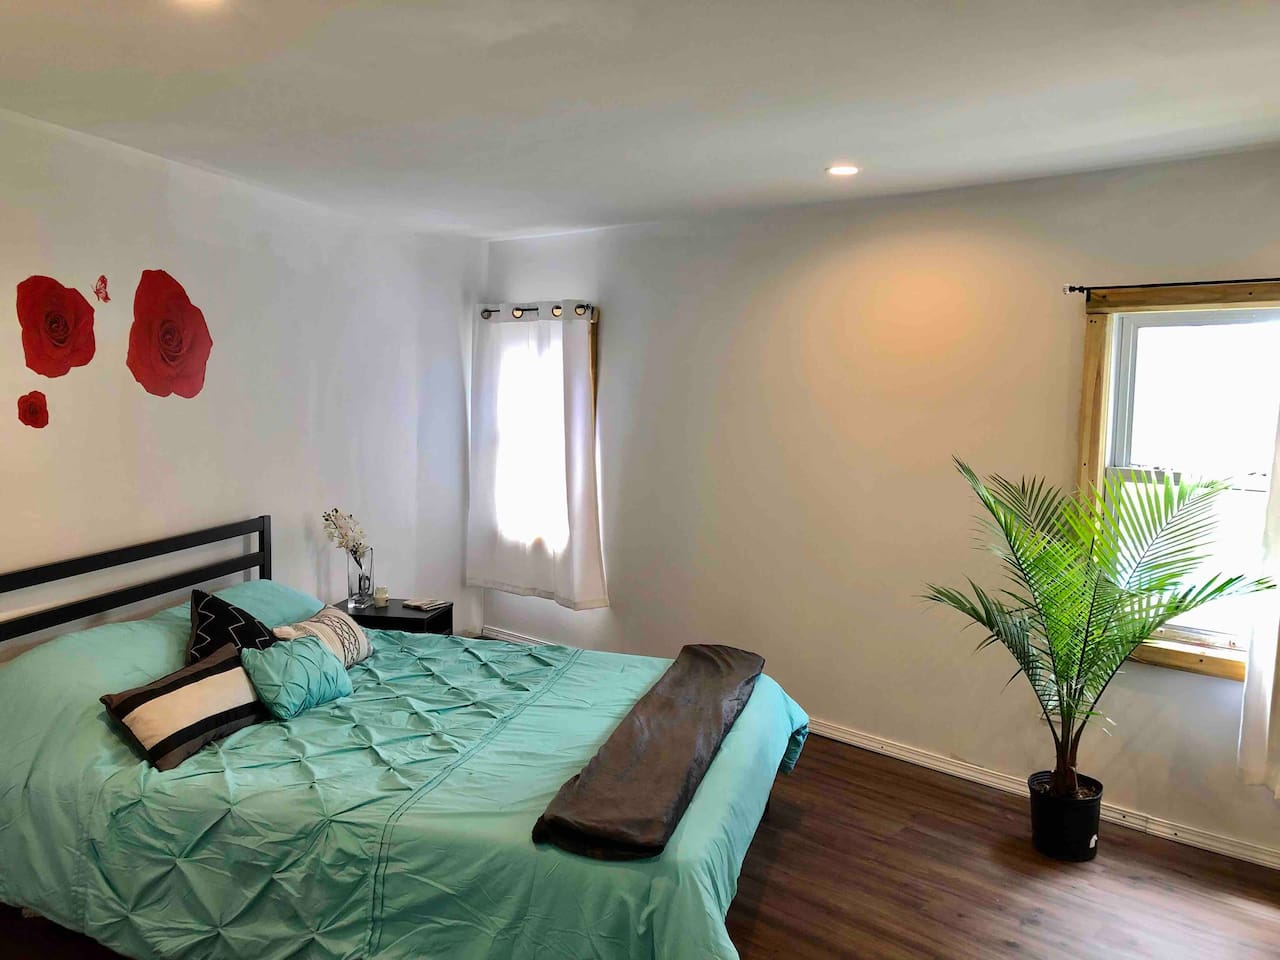 Spacious modern bedroom with queen size bed. Peaceful nights, bird singing in the morning